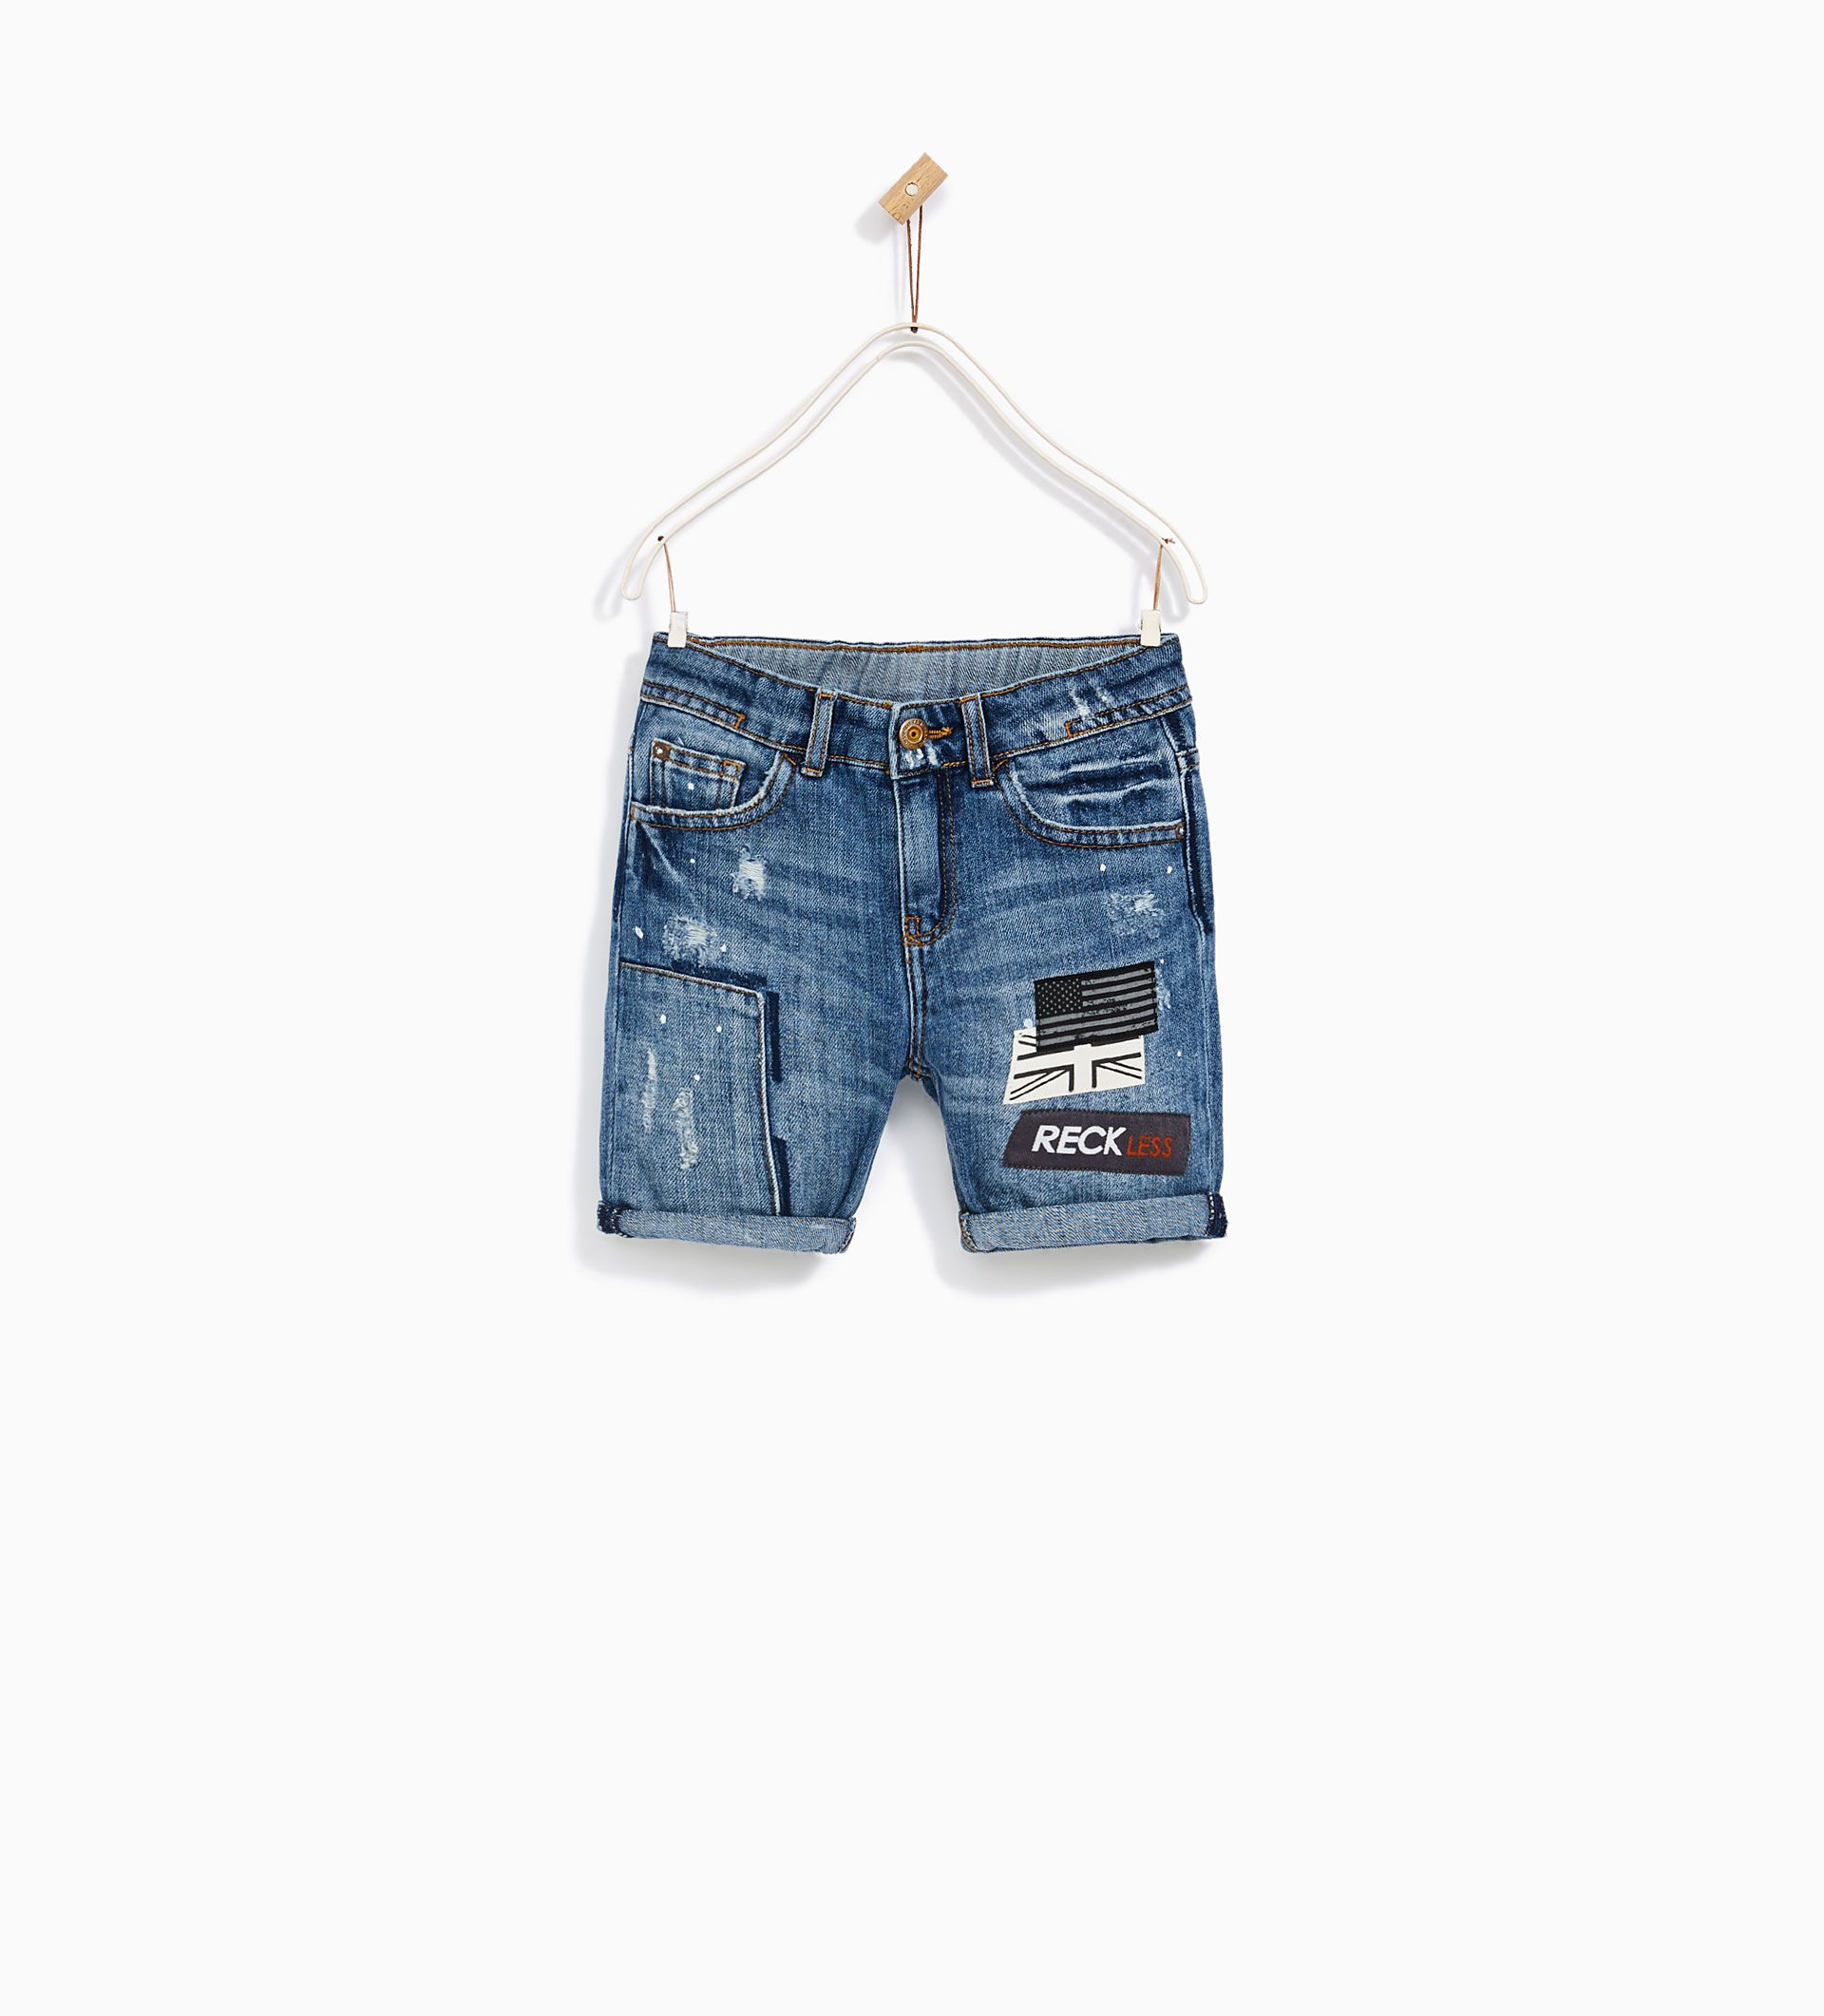 b929a15df2 ZARA - KIDS - BERMUDA SHORTS WITH FRONT PATCHES | Kaydens wardrobe ...